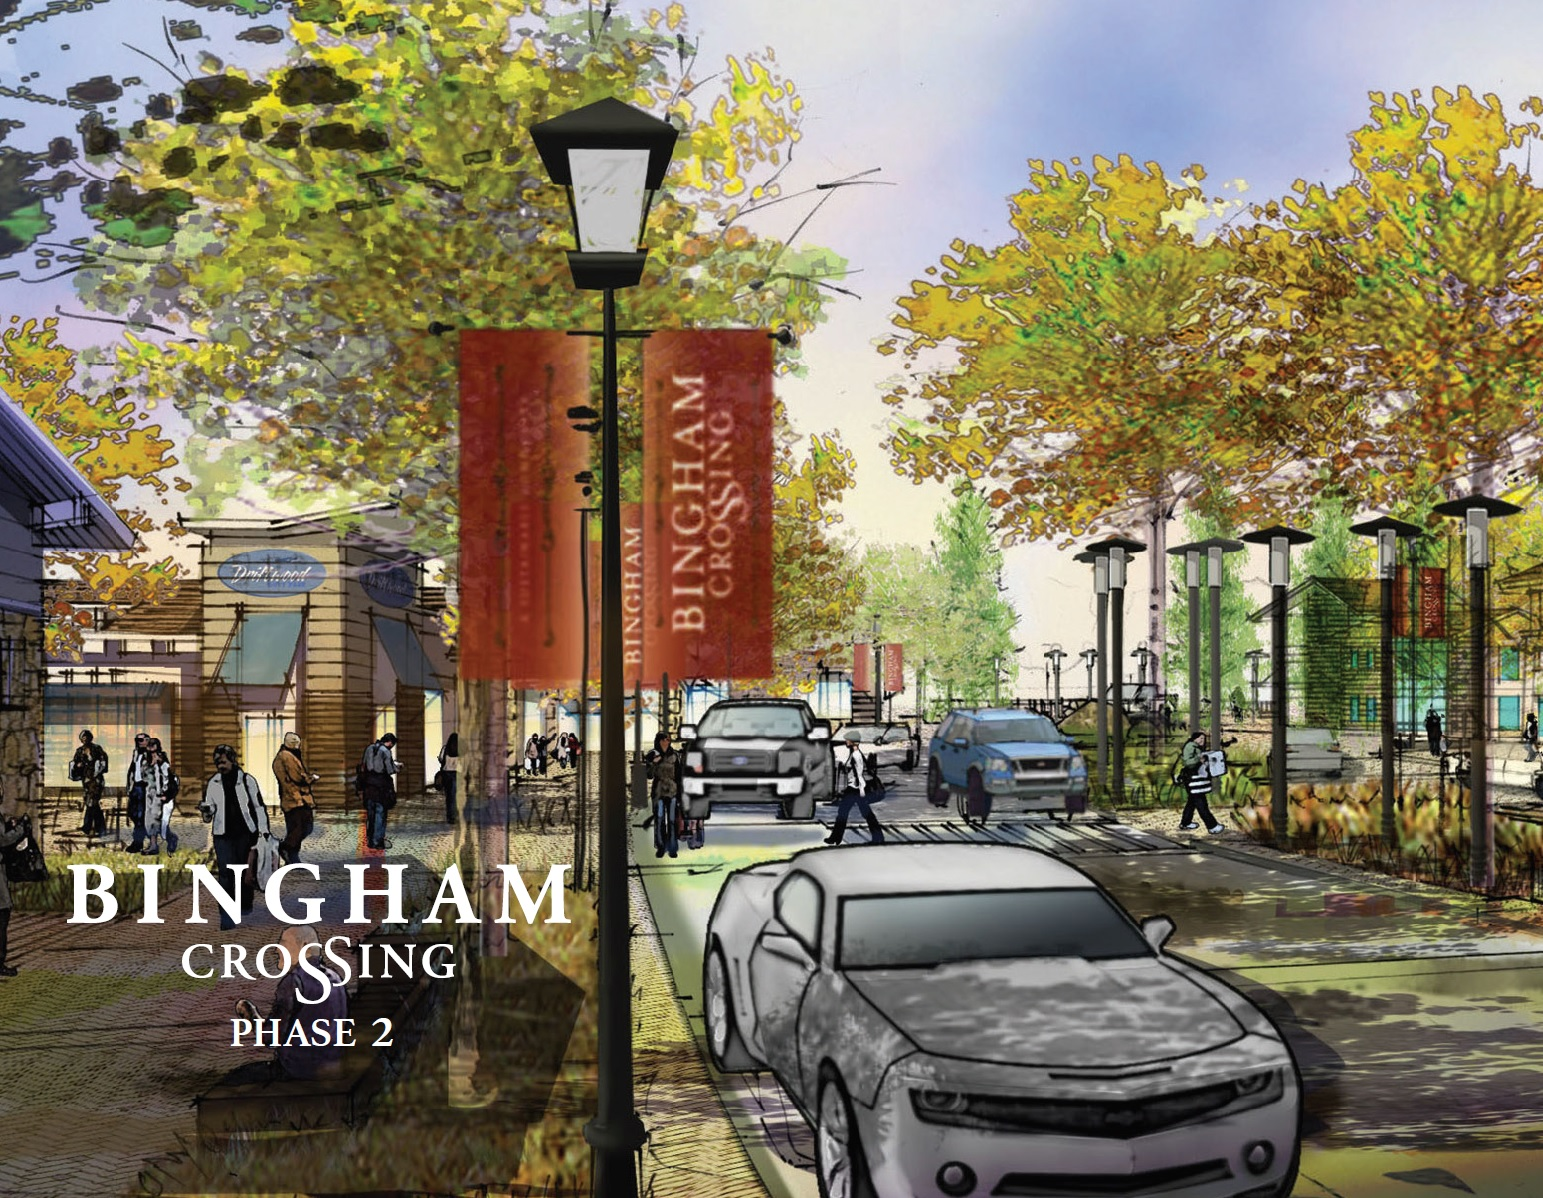 Bingham Crossing Phase 2